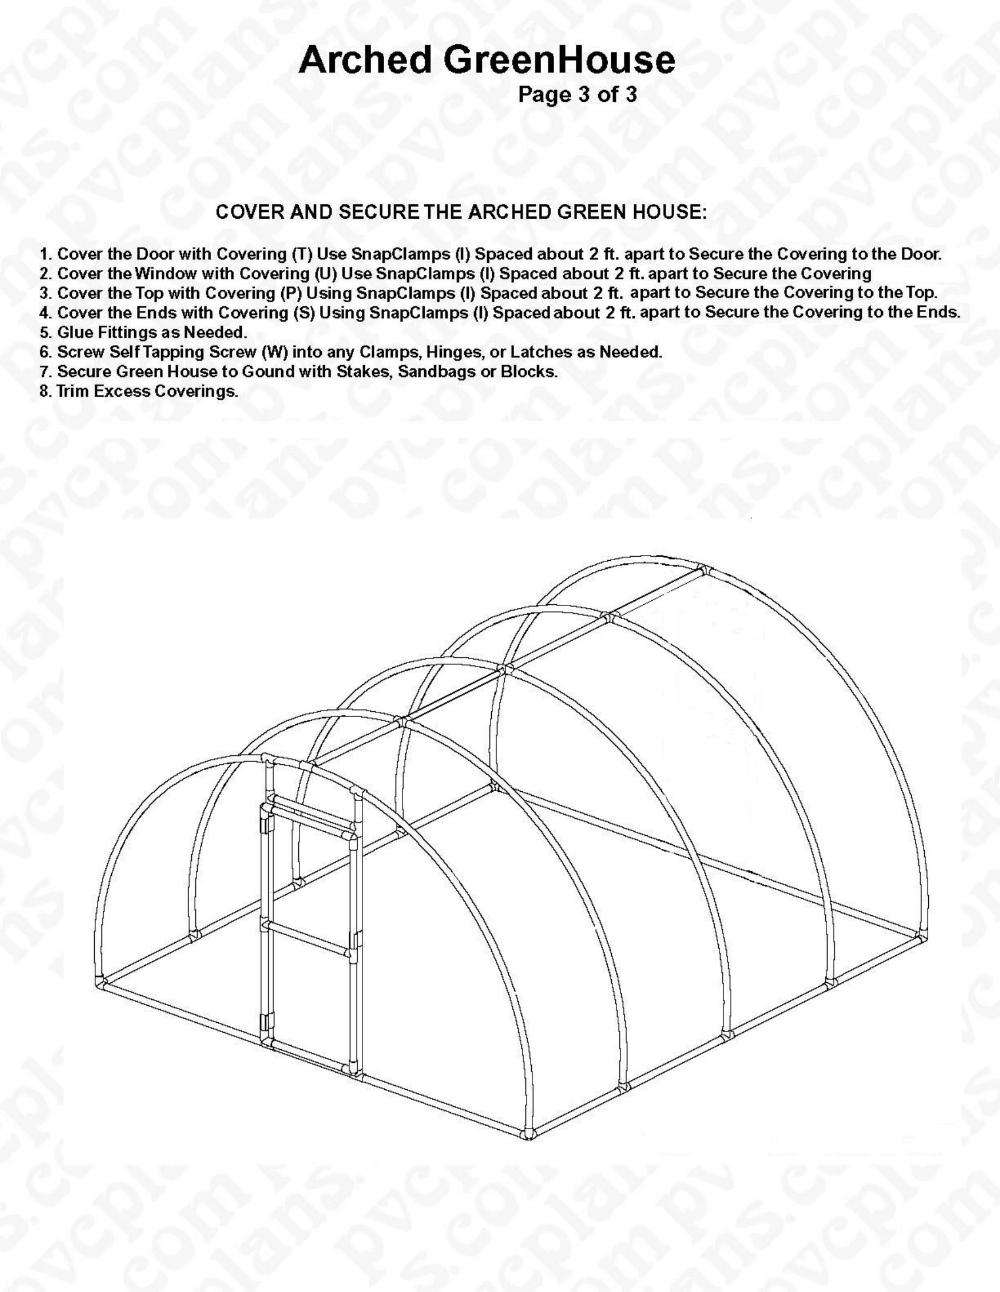 Pin By Jose Jaramillo On Invernadero In 2020 Pvc Greenhouse Plans Diy Greenhouse Plans Greenhouse